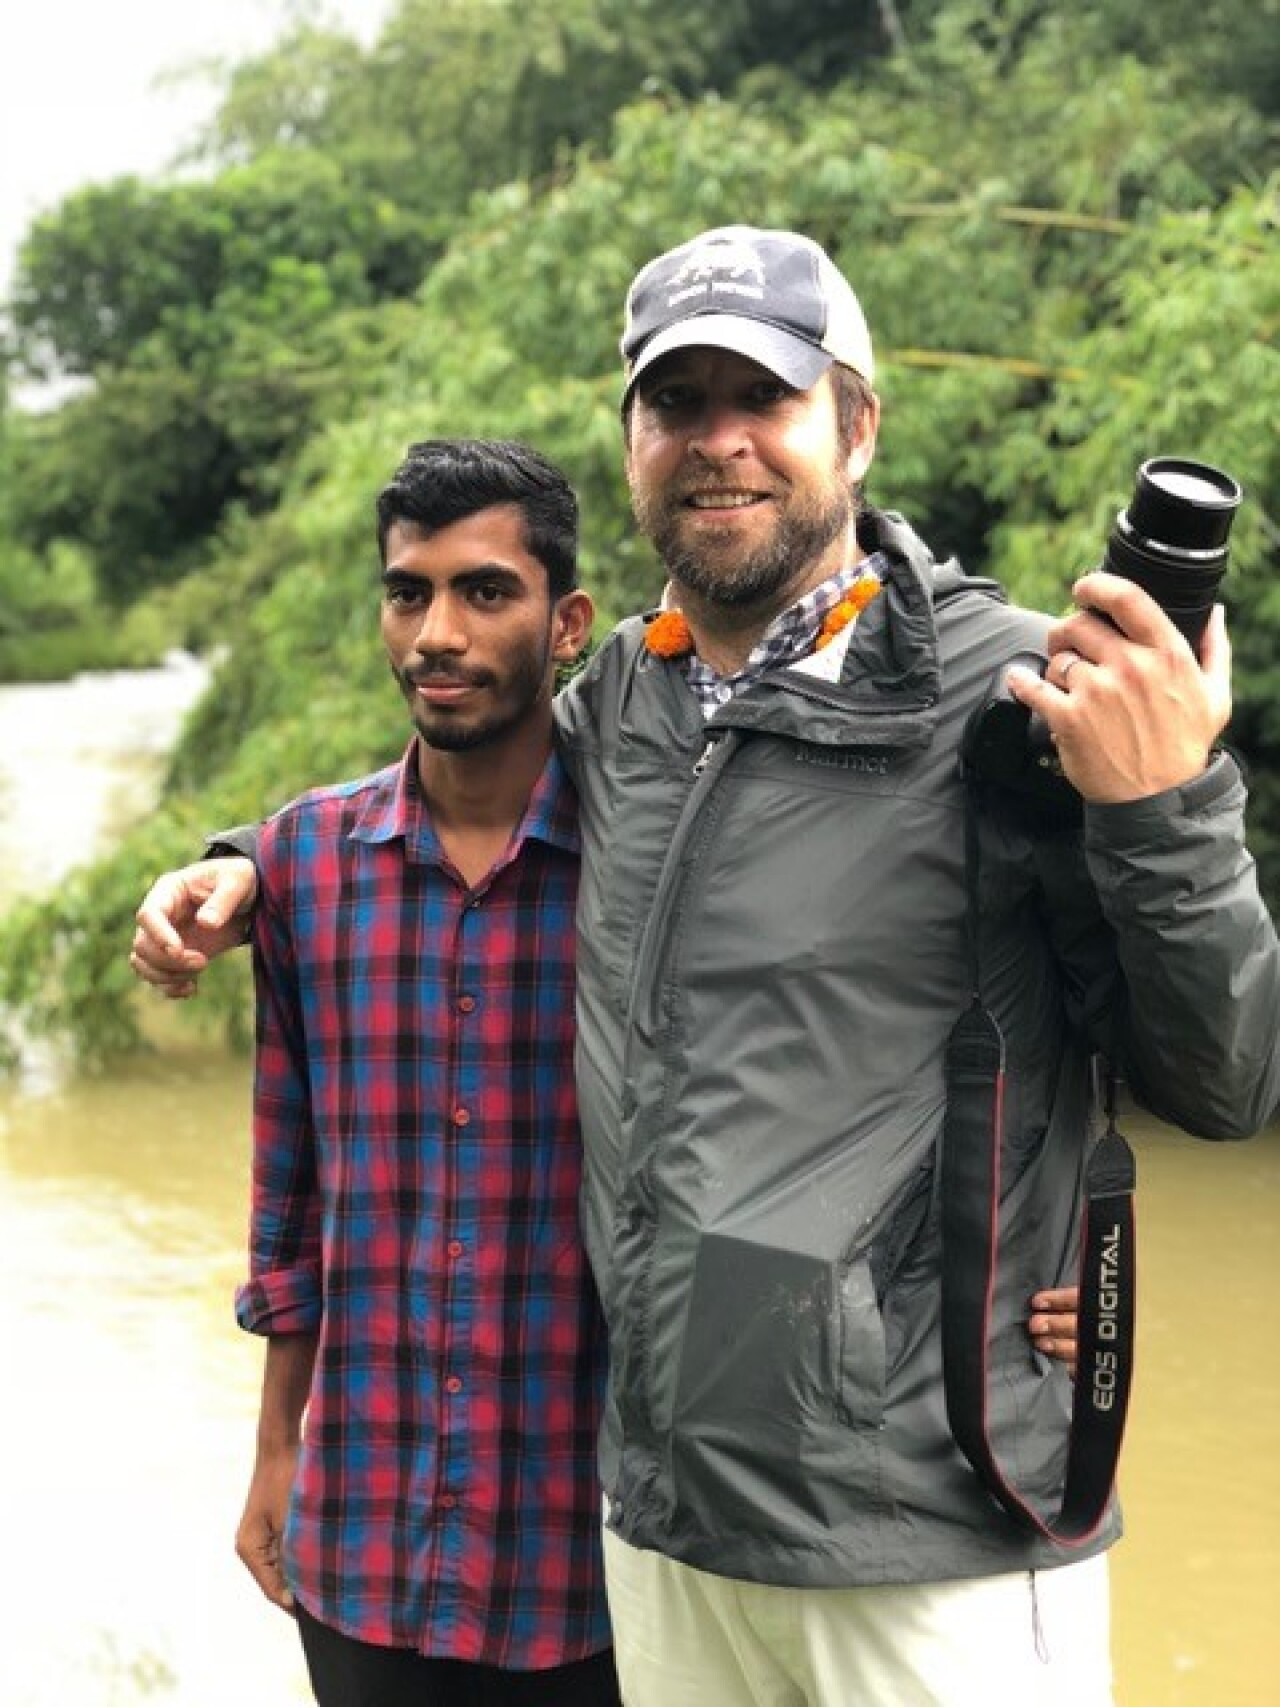 A photographer and a man smile and pose for a photo. They are standing in front of a small lake or stream with lush green shrubbery on the banks.